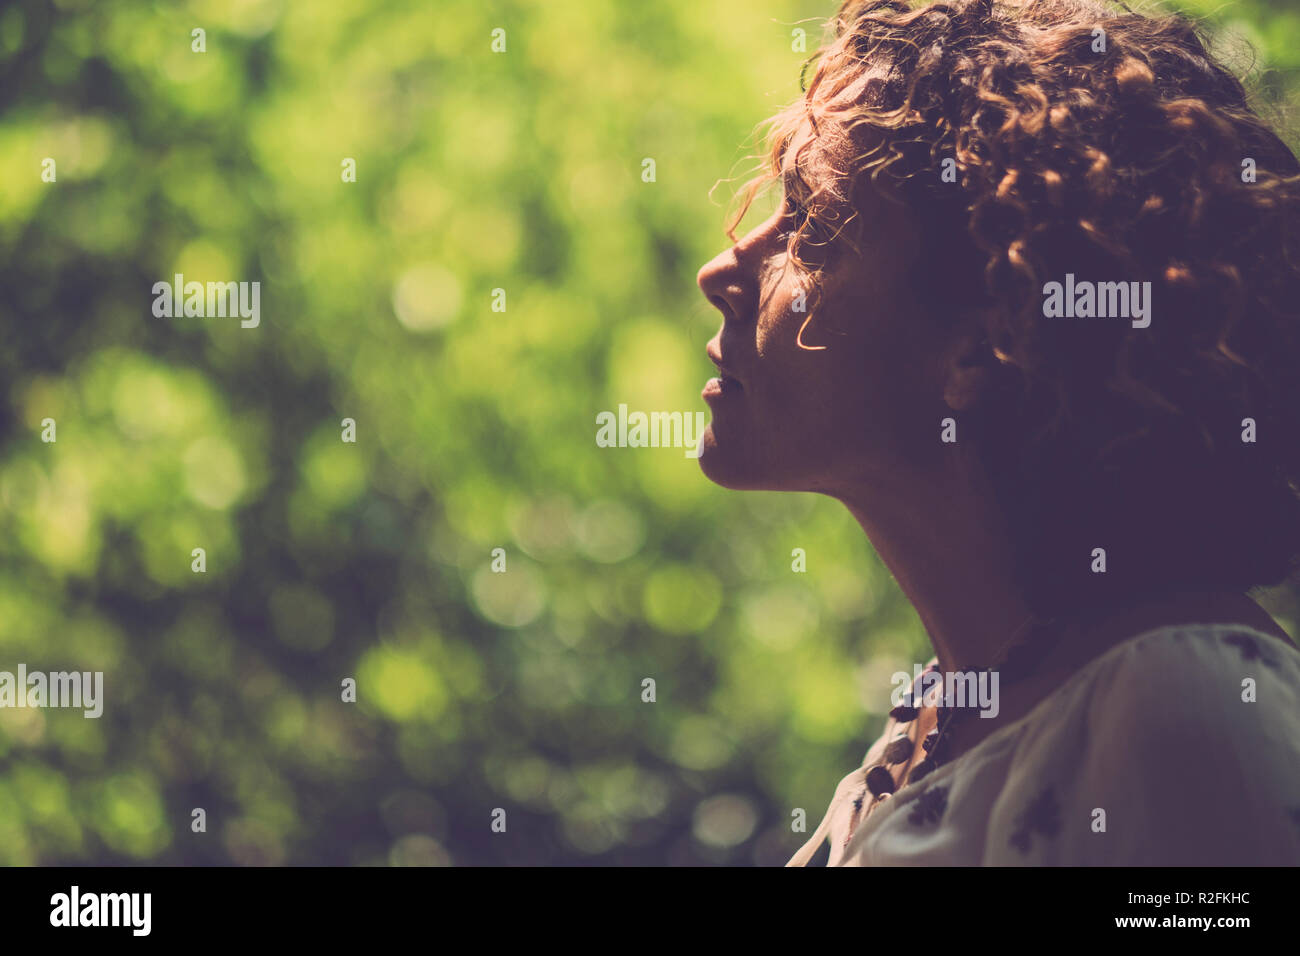 warm tones for a beautiful woman looking in front of her with a green natural bokeh in background - Stock Image